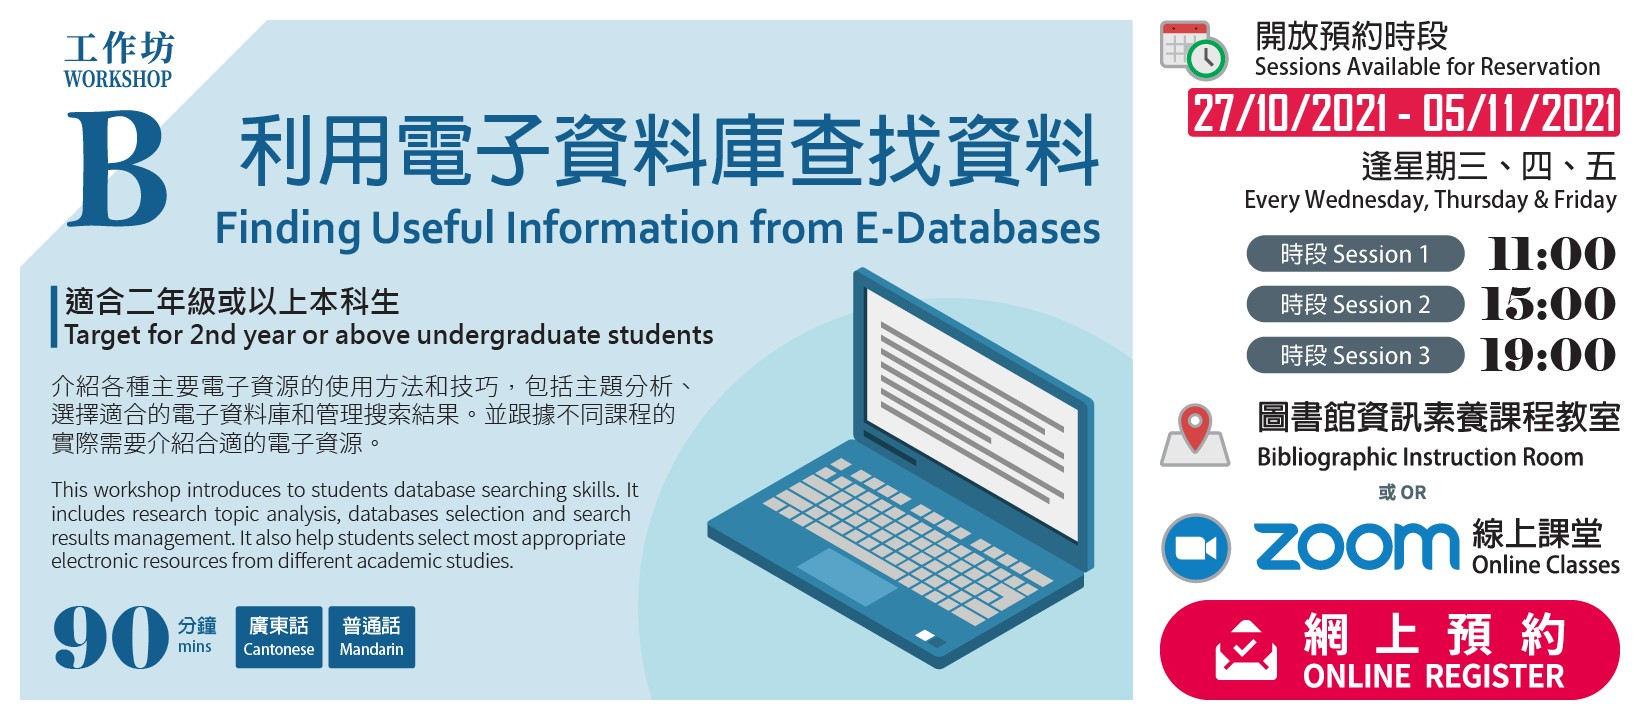 LIBRARY WORKSHOP B: Finding Useful Information from E-Databases